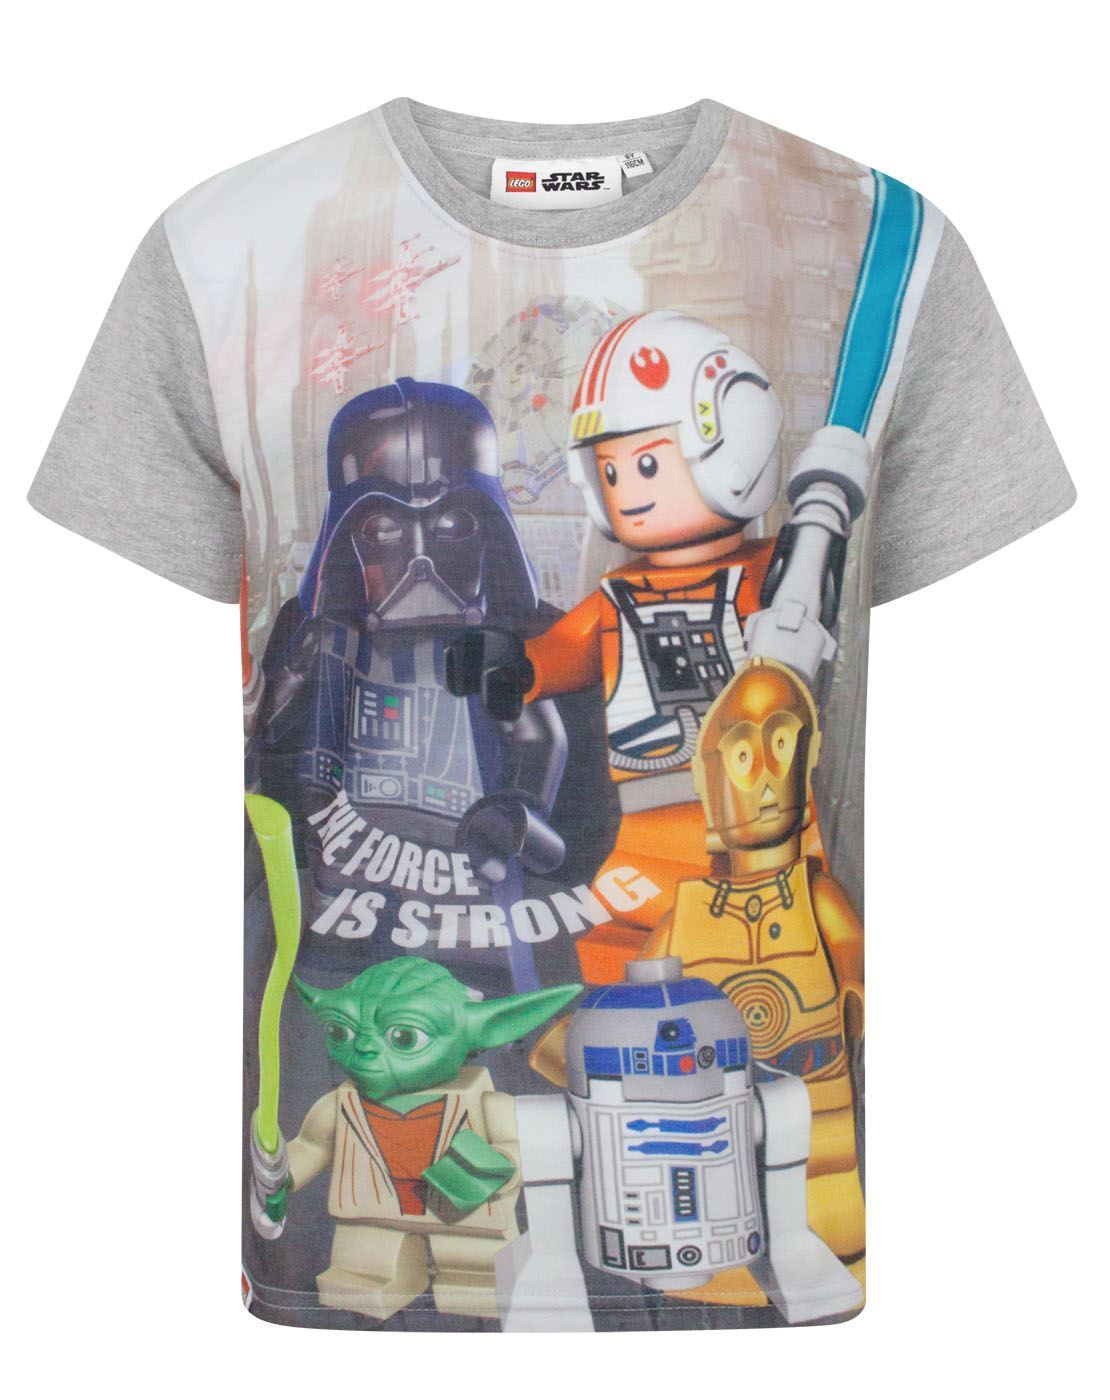 25a21f688 Lego Star Wars The Force Is Strong Boy's T-Shirt – Vanilla Underground